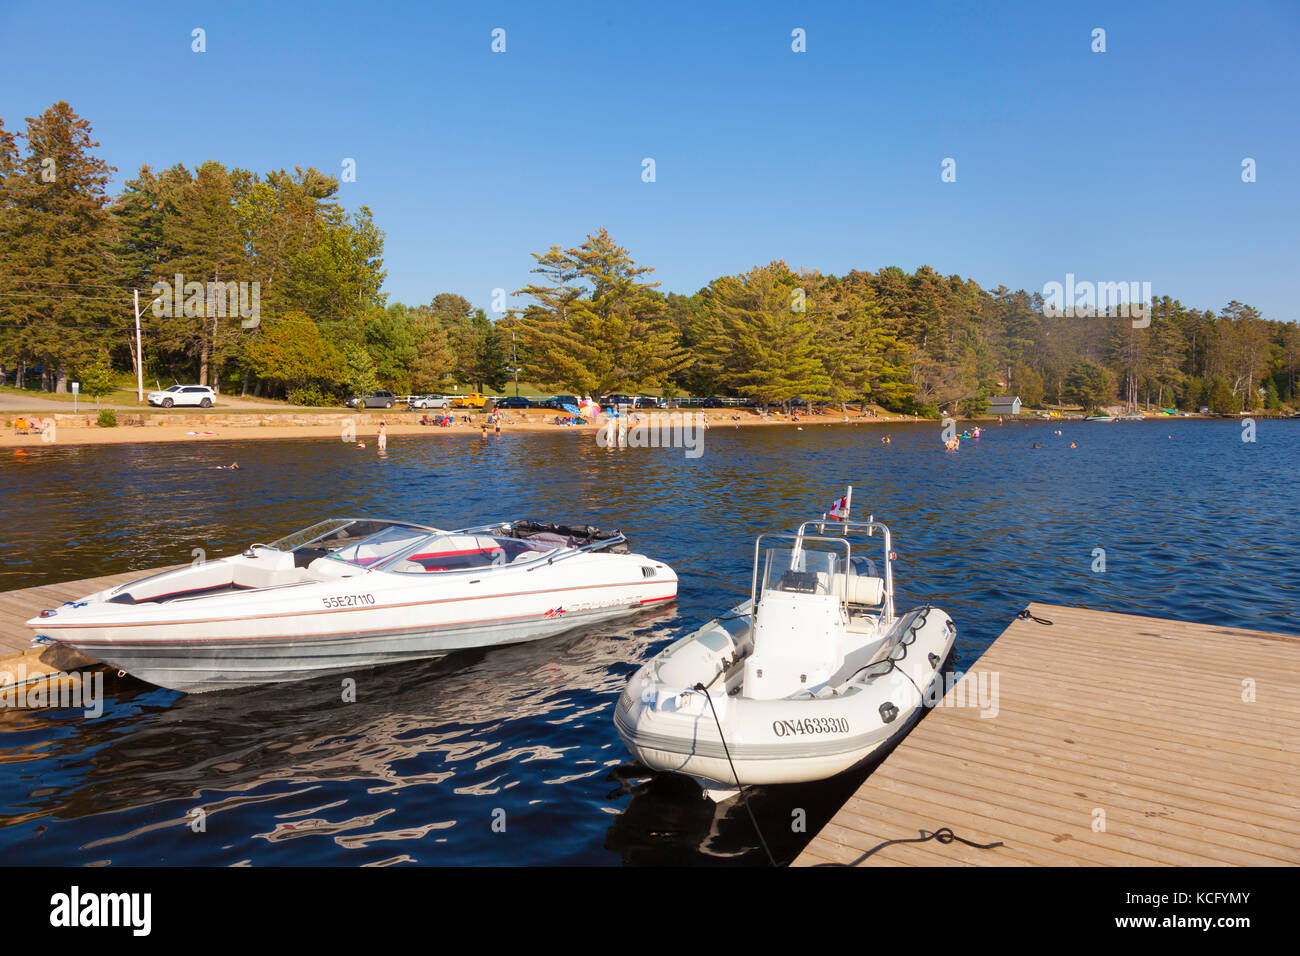 Two boats docked at Canada,Ontario,Huntsville,Dwight, Dwight Beach sommer playground in Ontario's North in Cottage - Stock Image